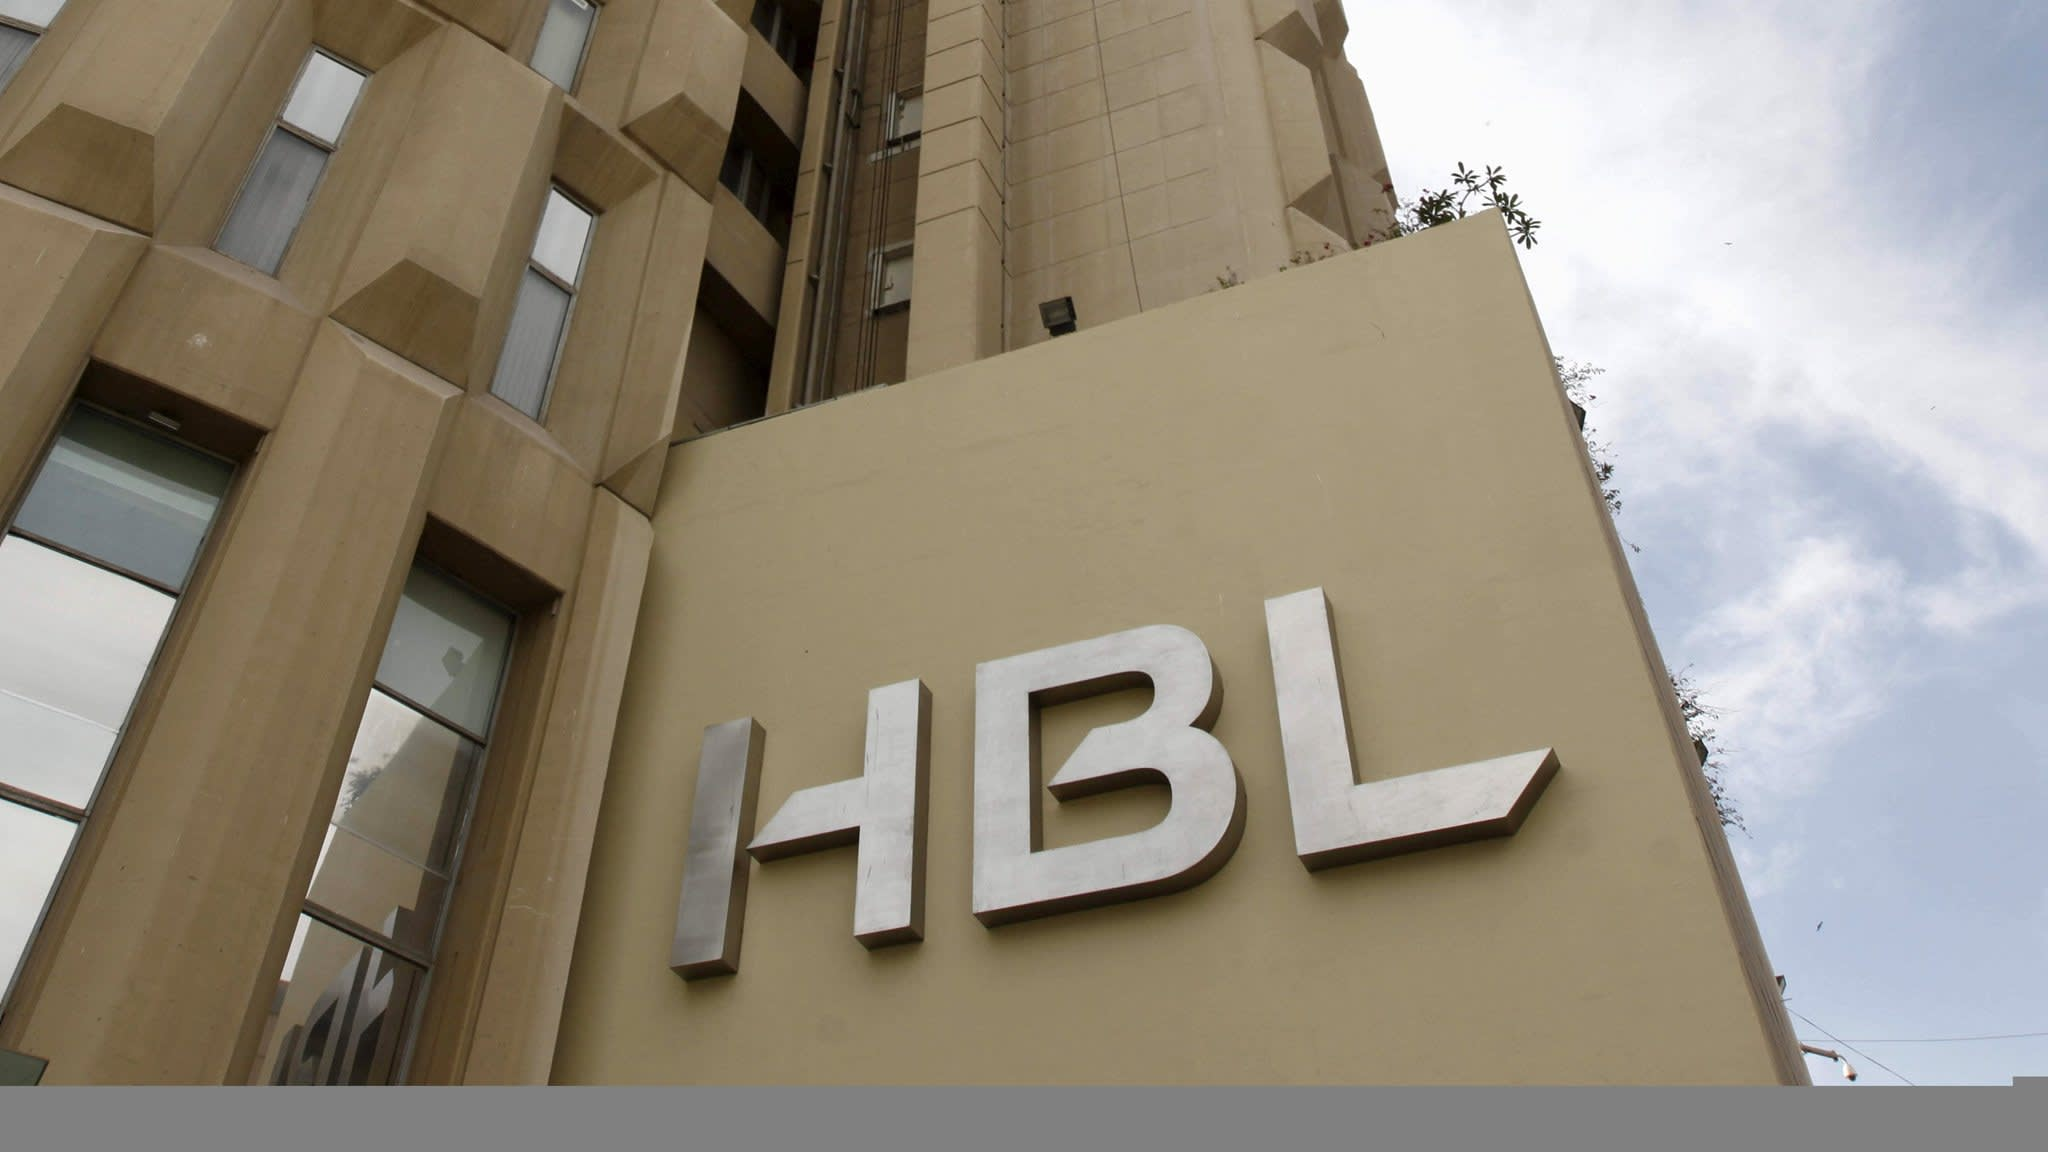 New York regulator seeks $630m penalty from Habib Bank | Financial Times